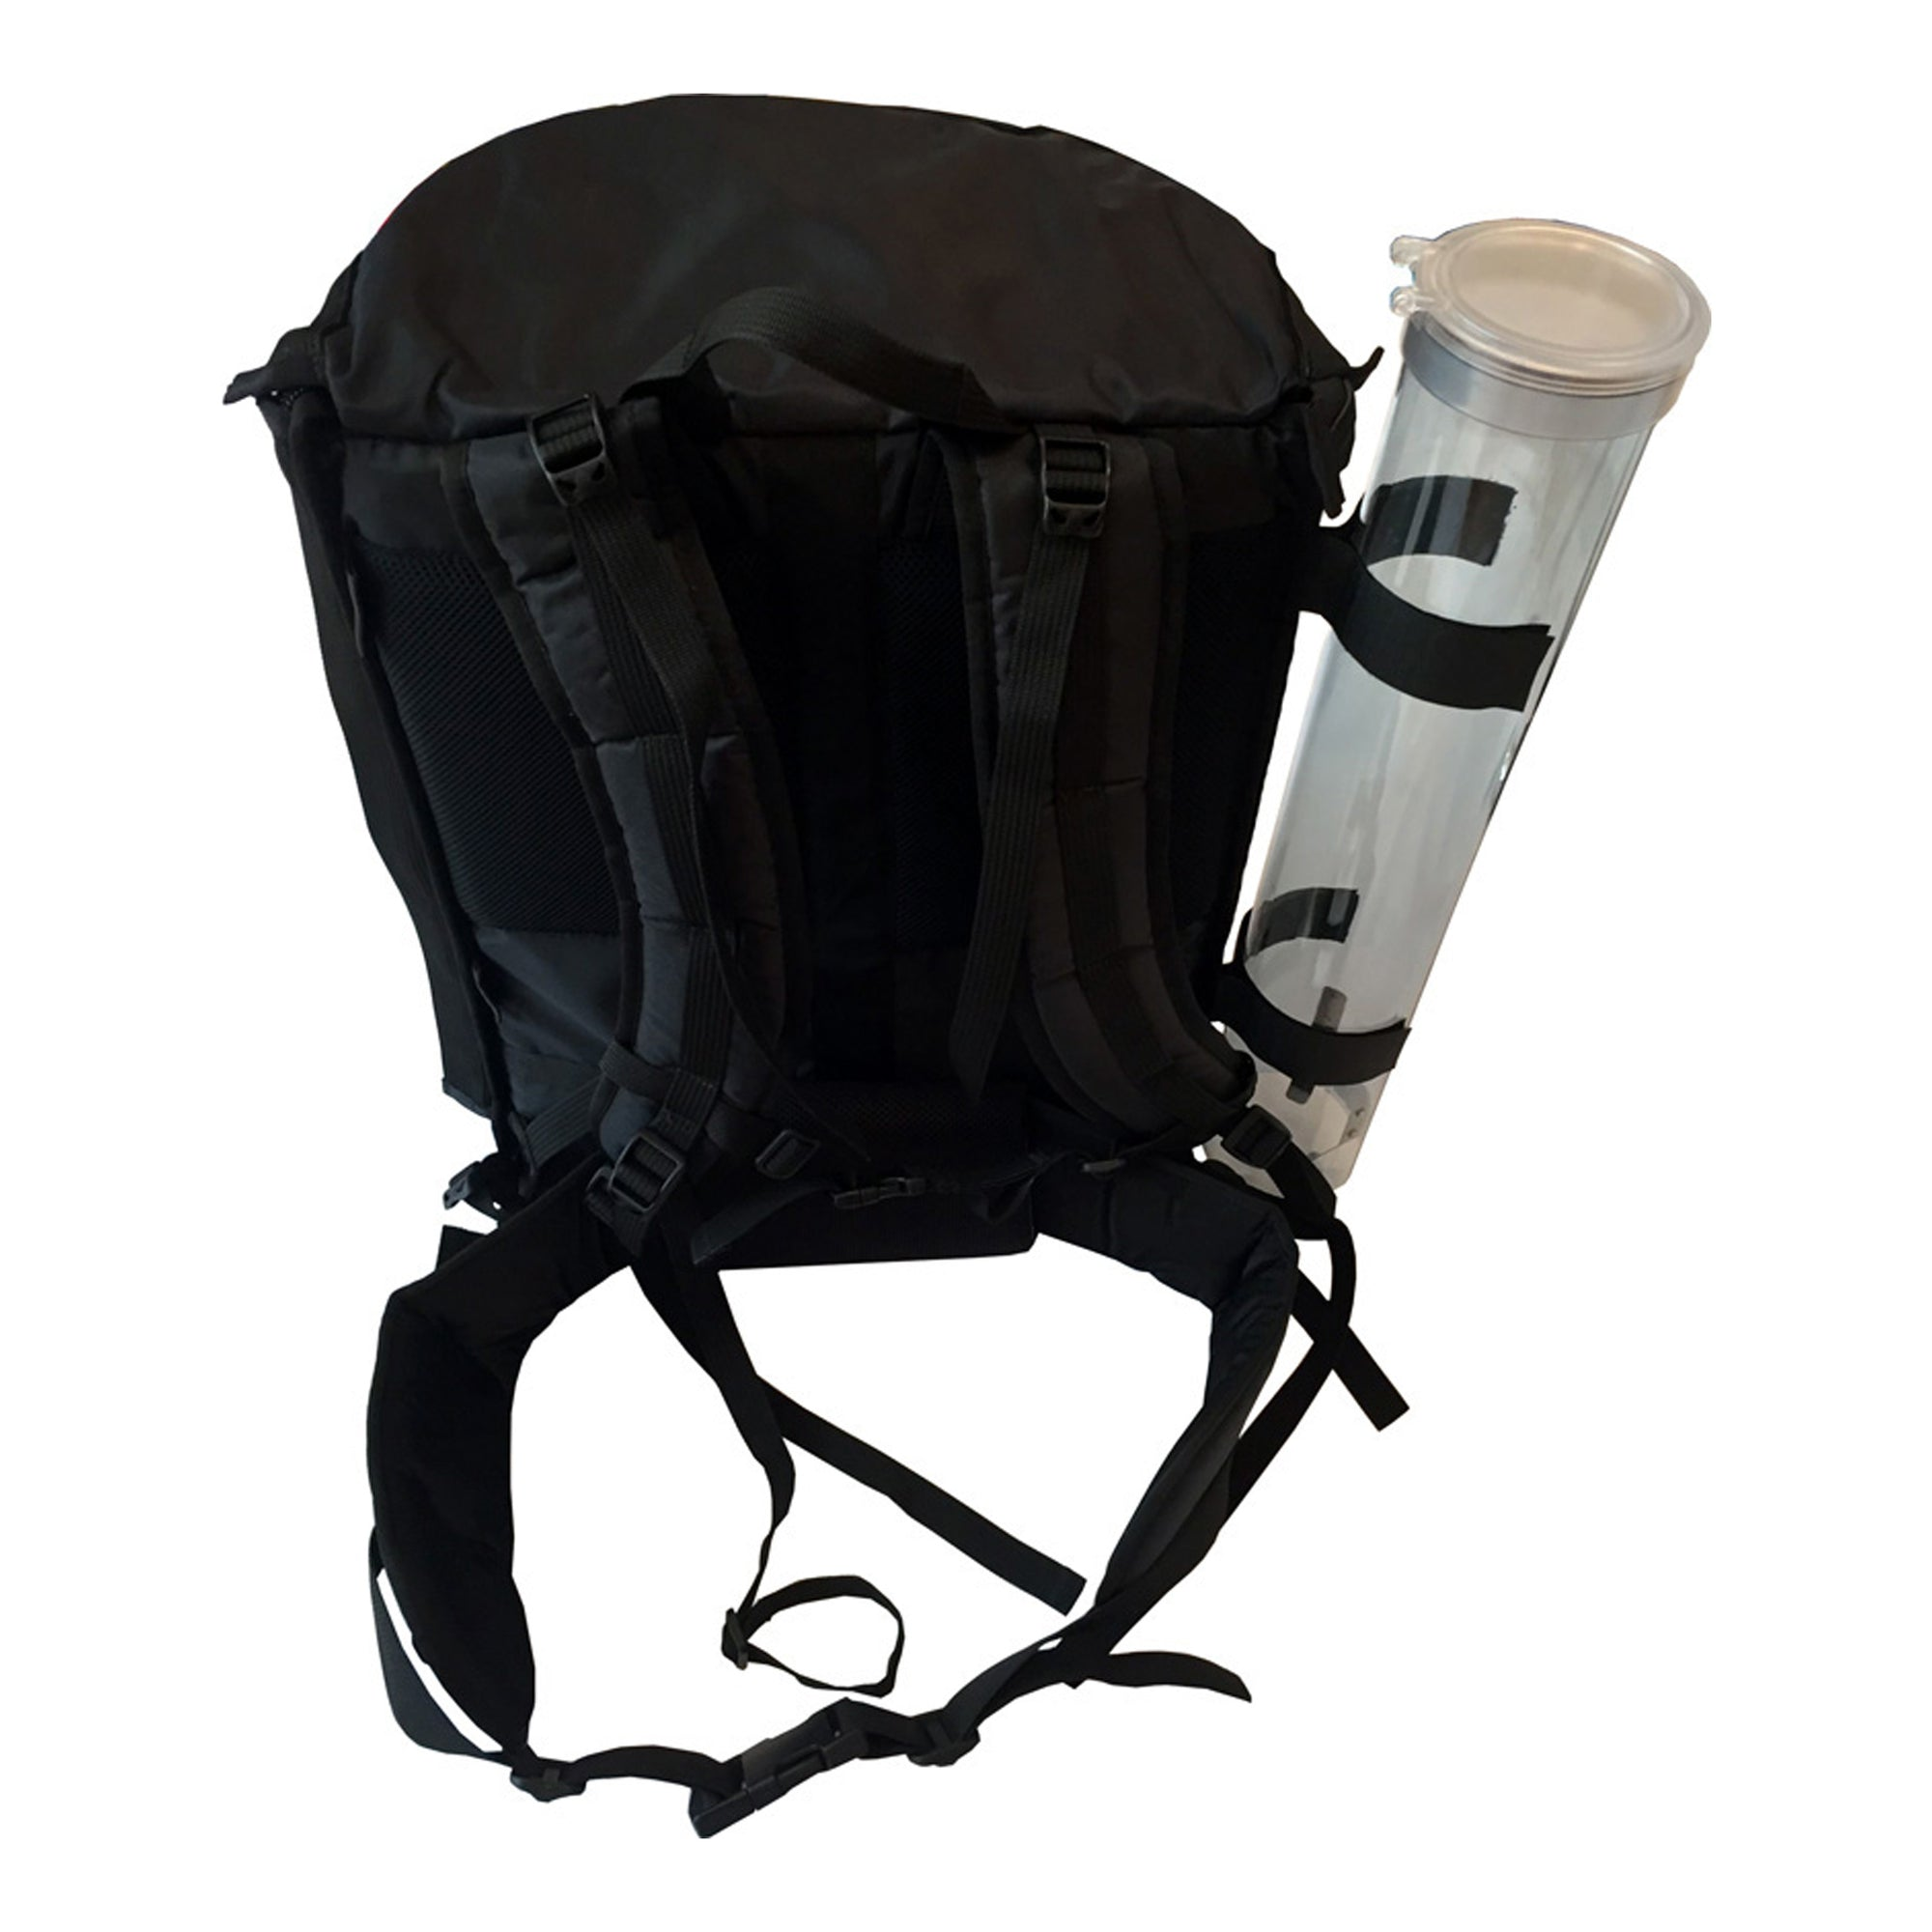 Backpack Dispenser 15L - Espresso Gear